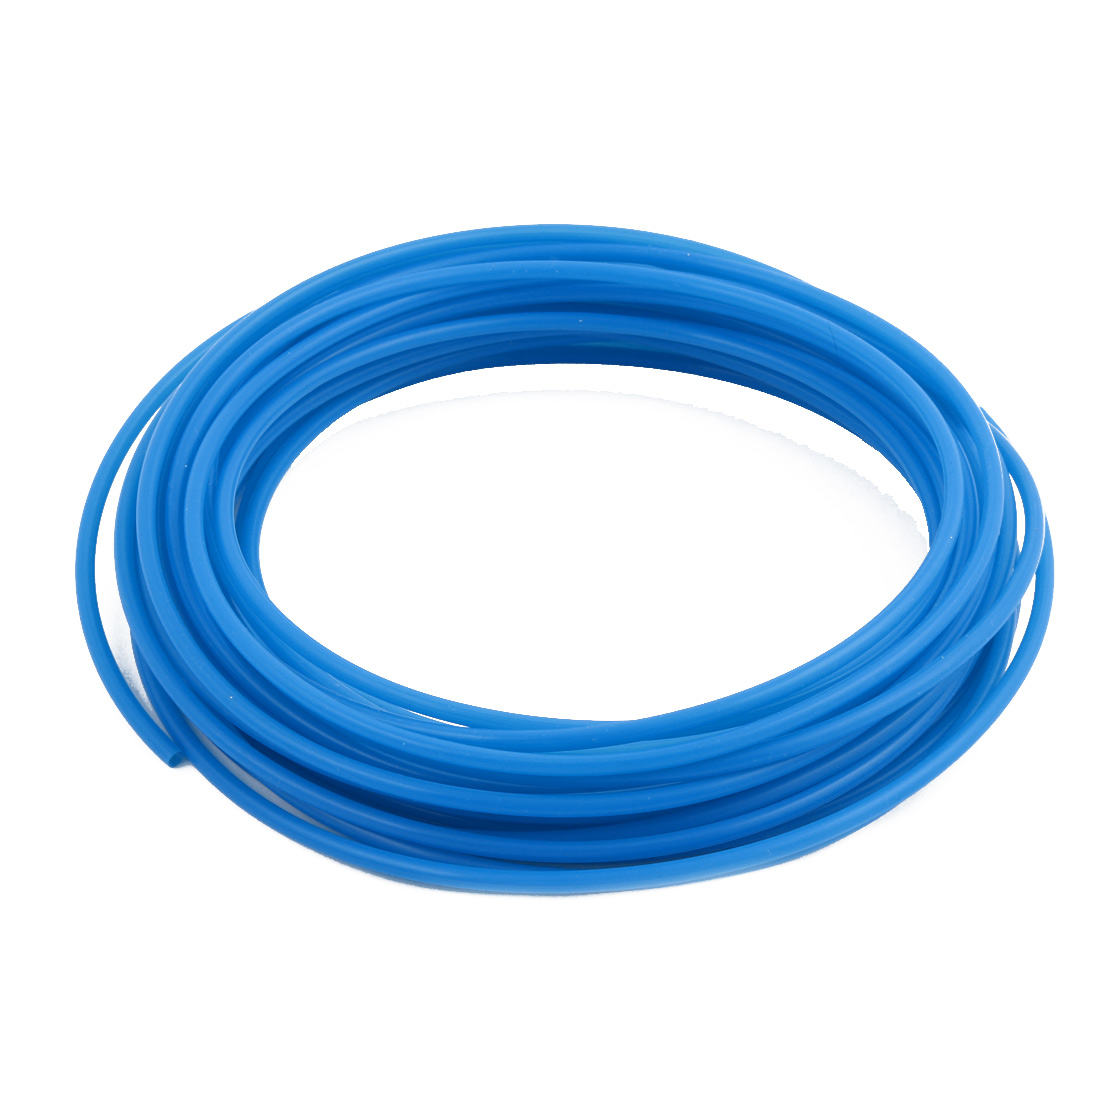 3.38mmx3.78mm PTFE Resistant High Temperature Blue Tubing 10 Meters 32.8Ft